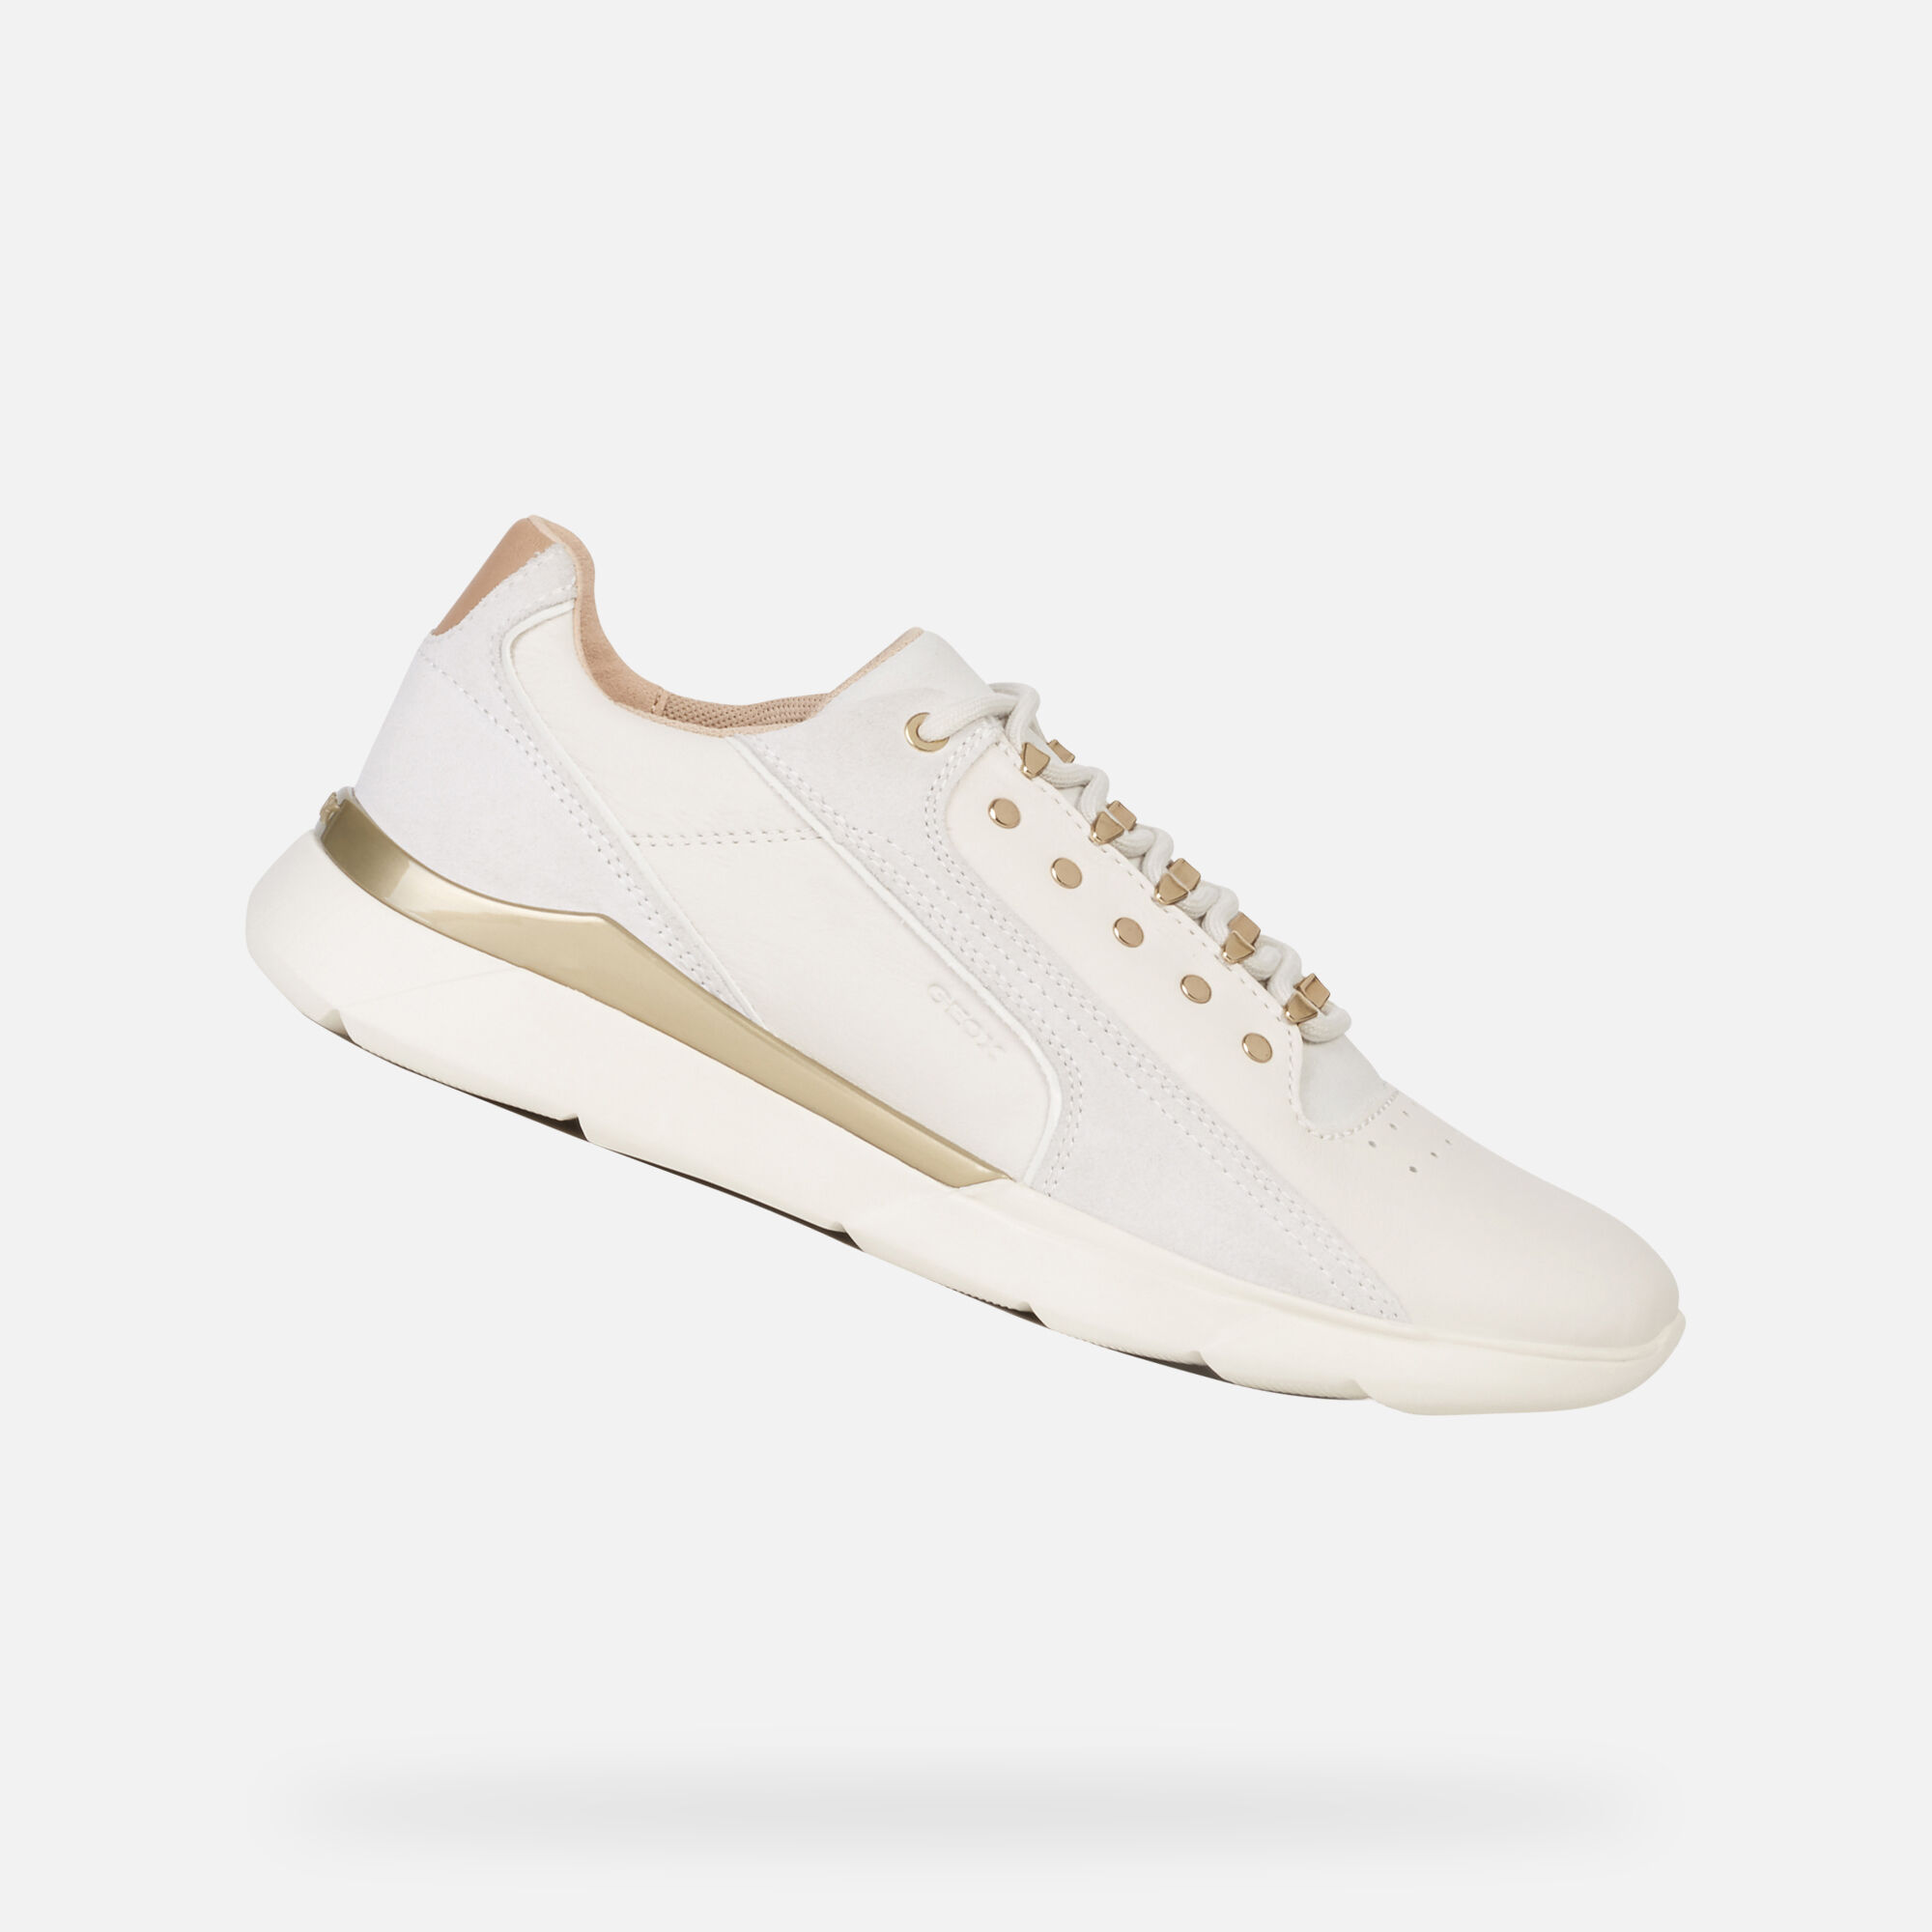 Geox HIVER Donna: Sneakers Basse Bianche | Geox ®